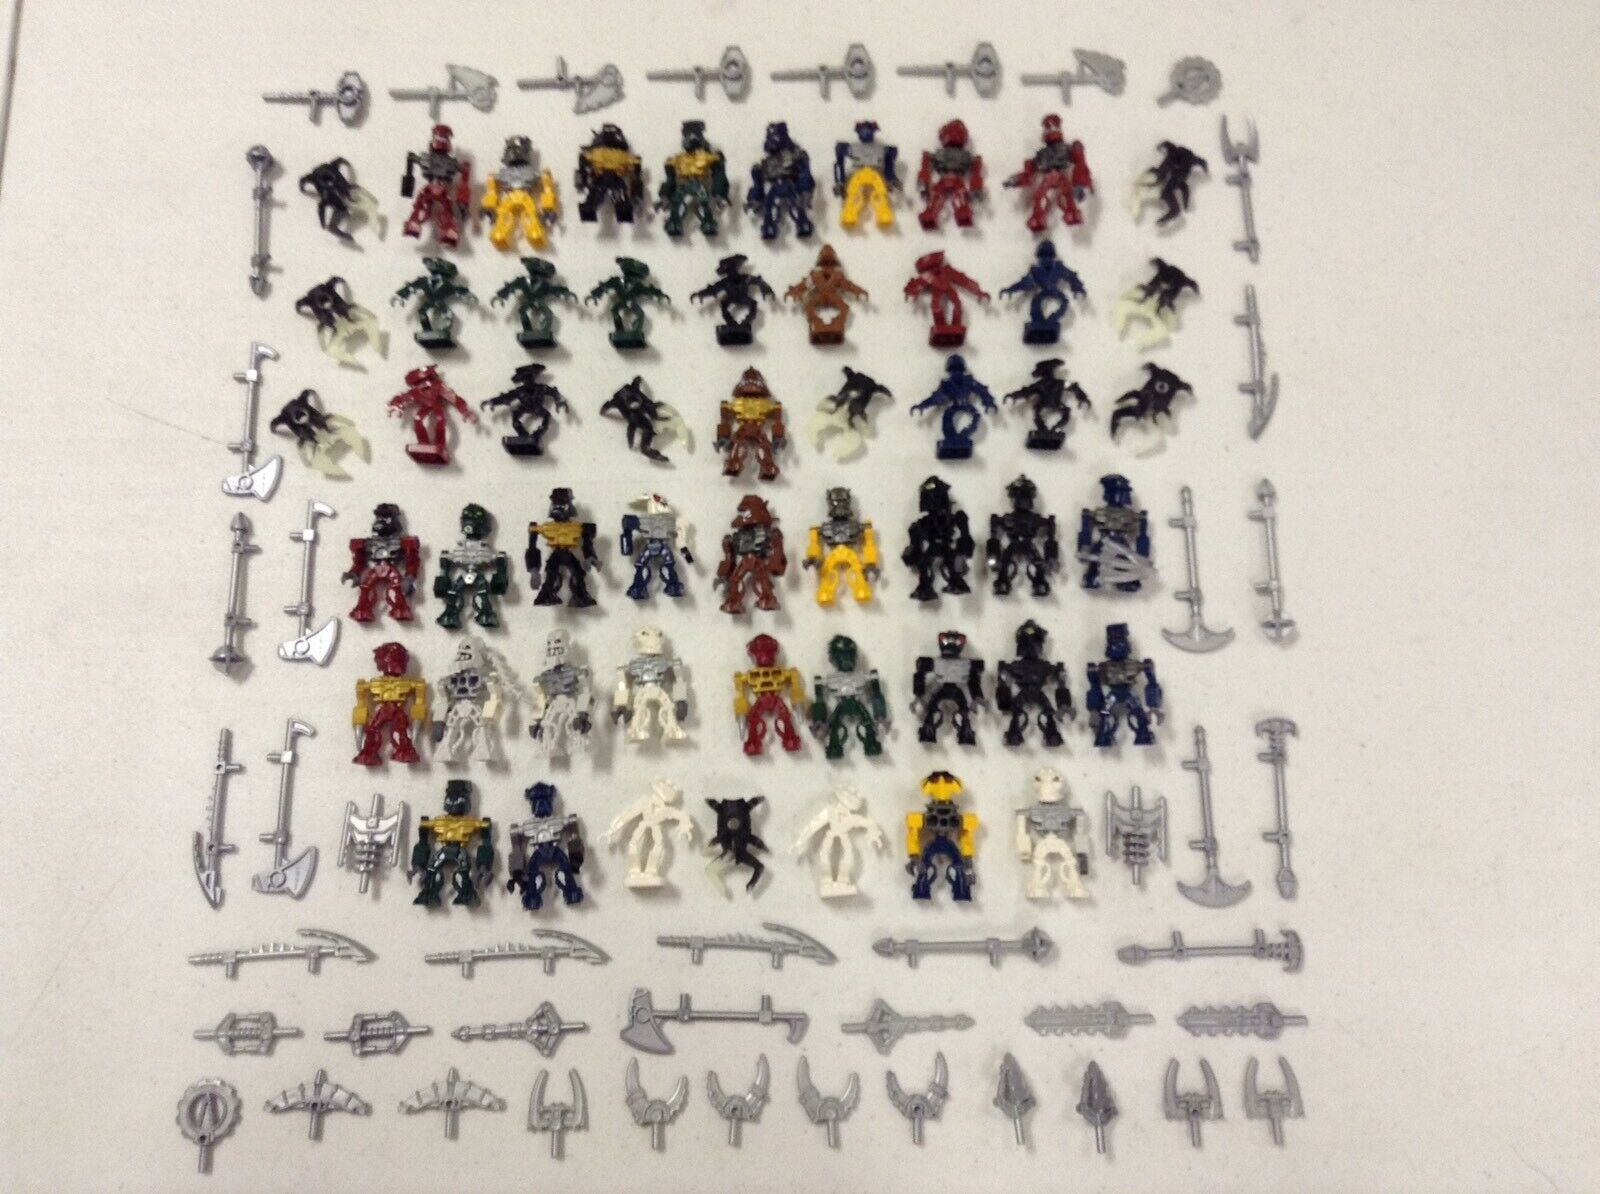 LEGO X53 Minifigures Bionicle With Weapons Accessories Minifigs Bulk Lot